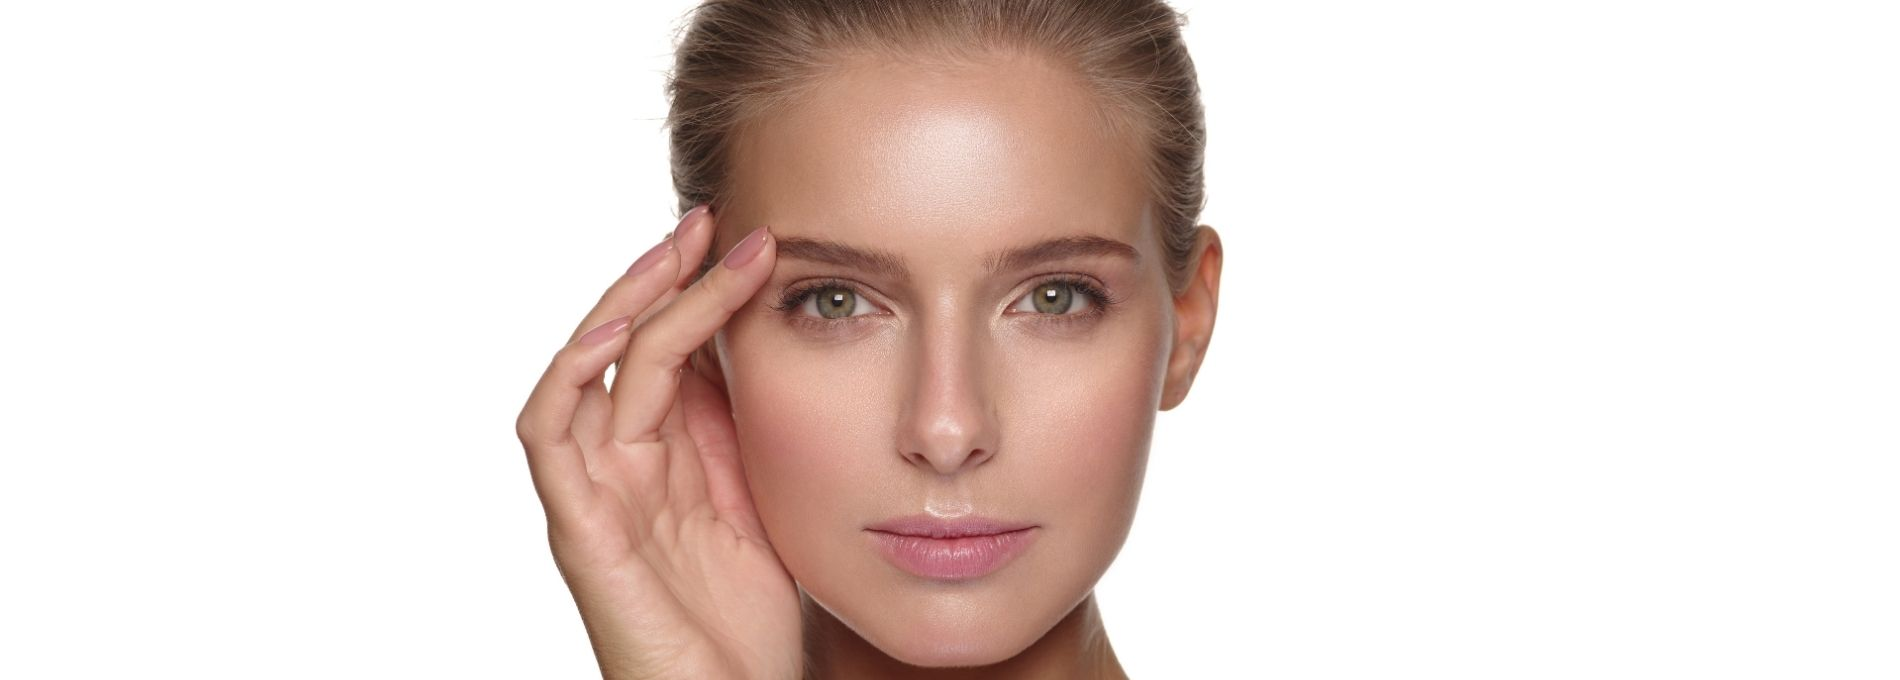 Raleigh forehead reduction Surgery